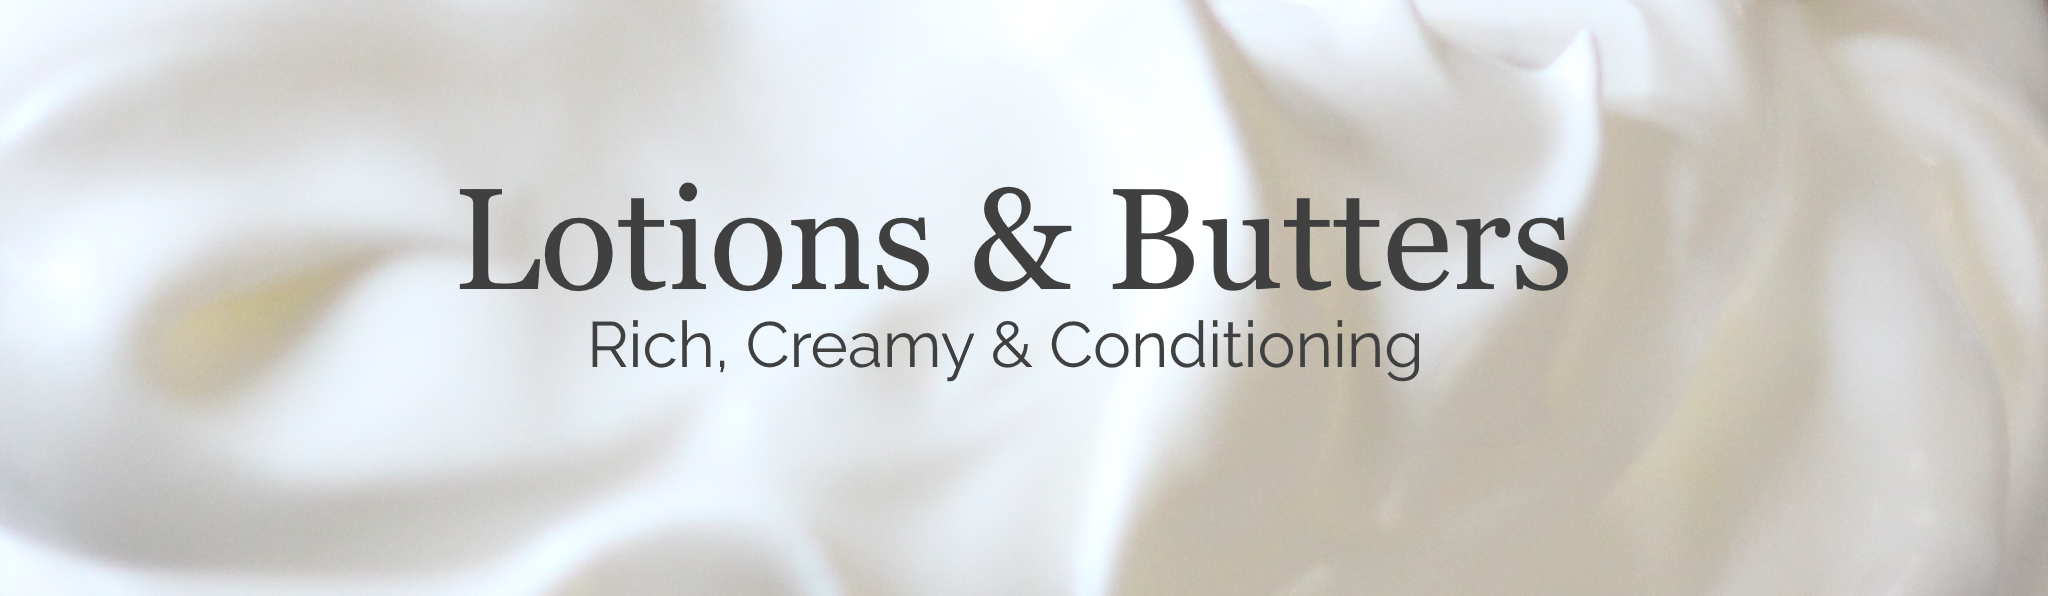 Lotions & Butters